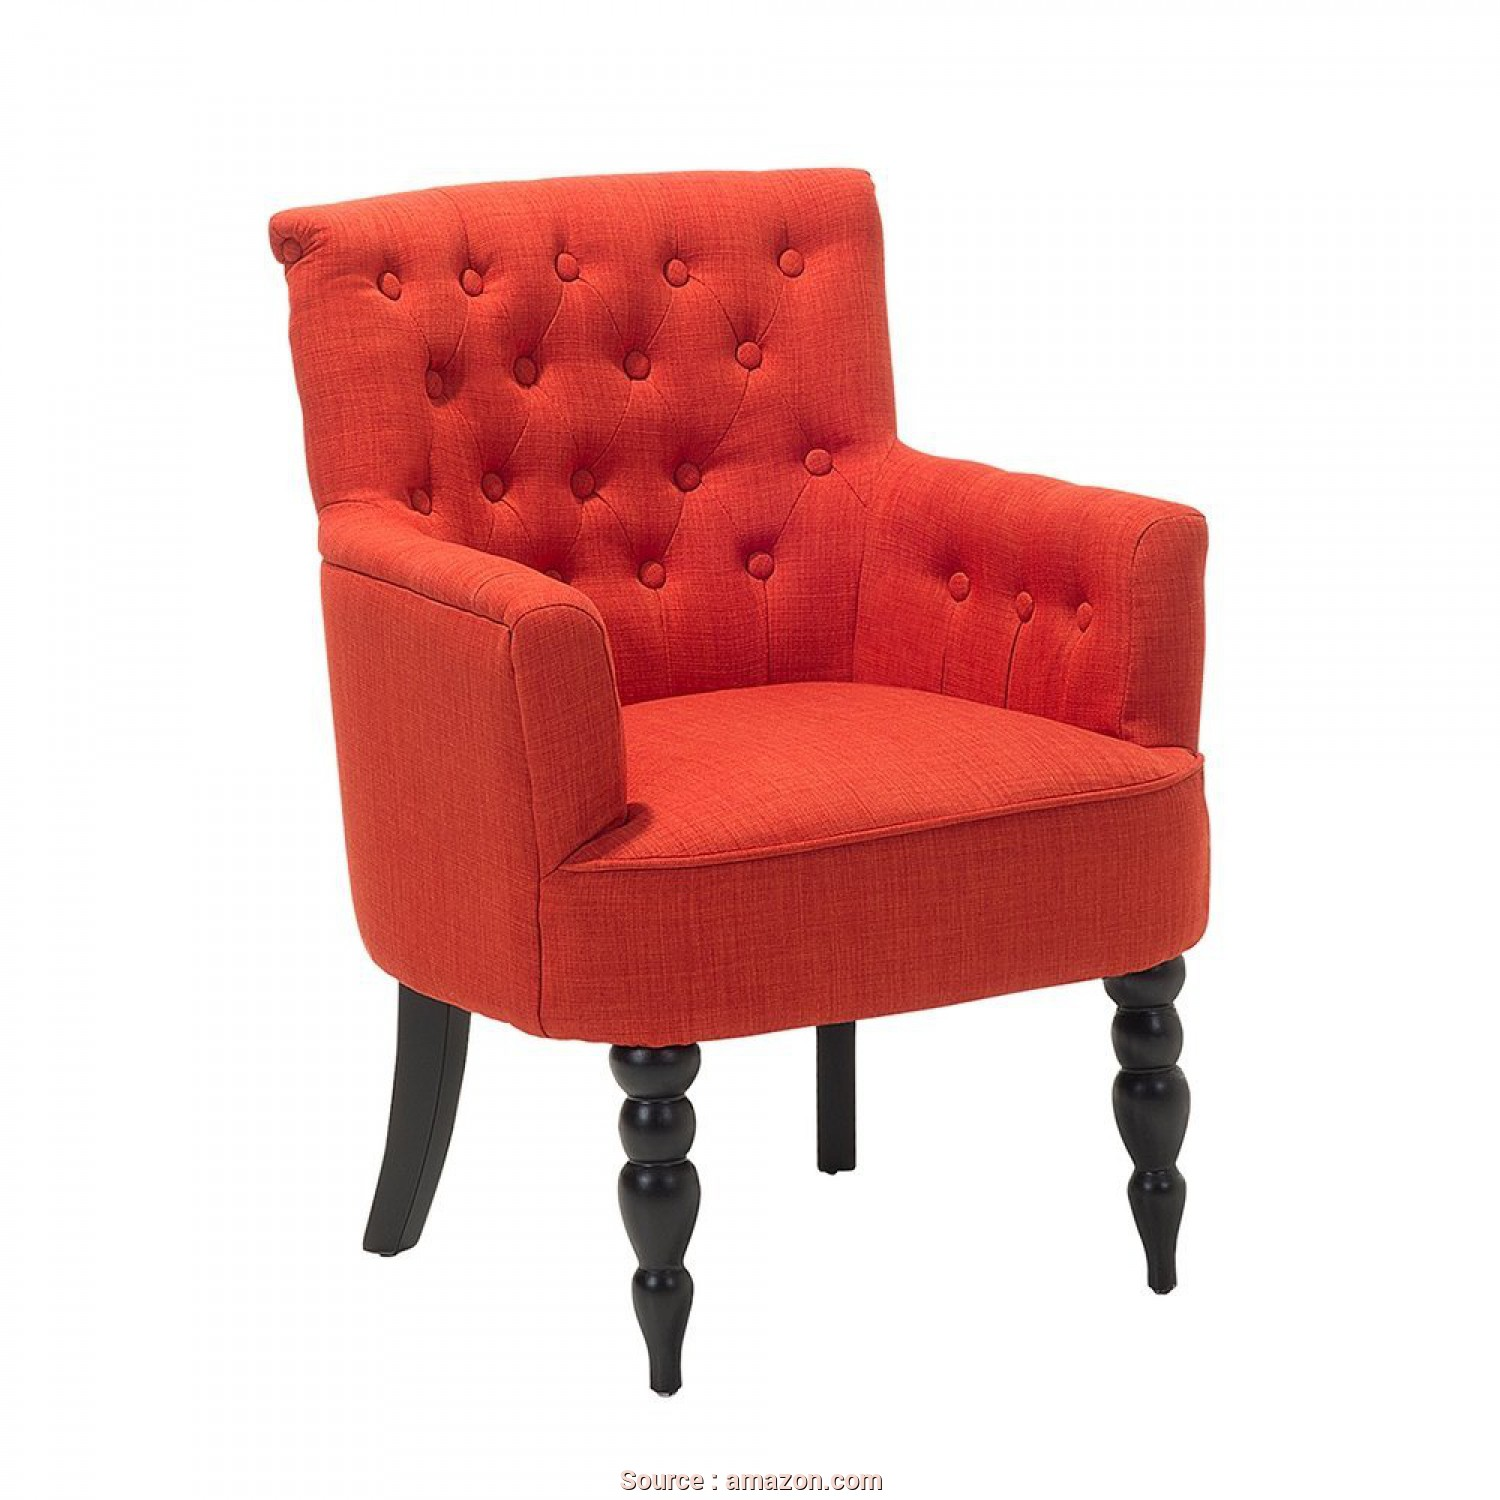 Poltrone Vintage Amazon, Rustico Amazon.Com: Beliani Classic Button Tufted Upholstered Armchair Red: Kitchen & Dining